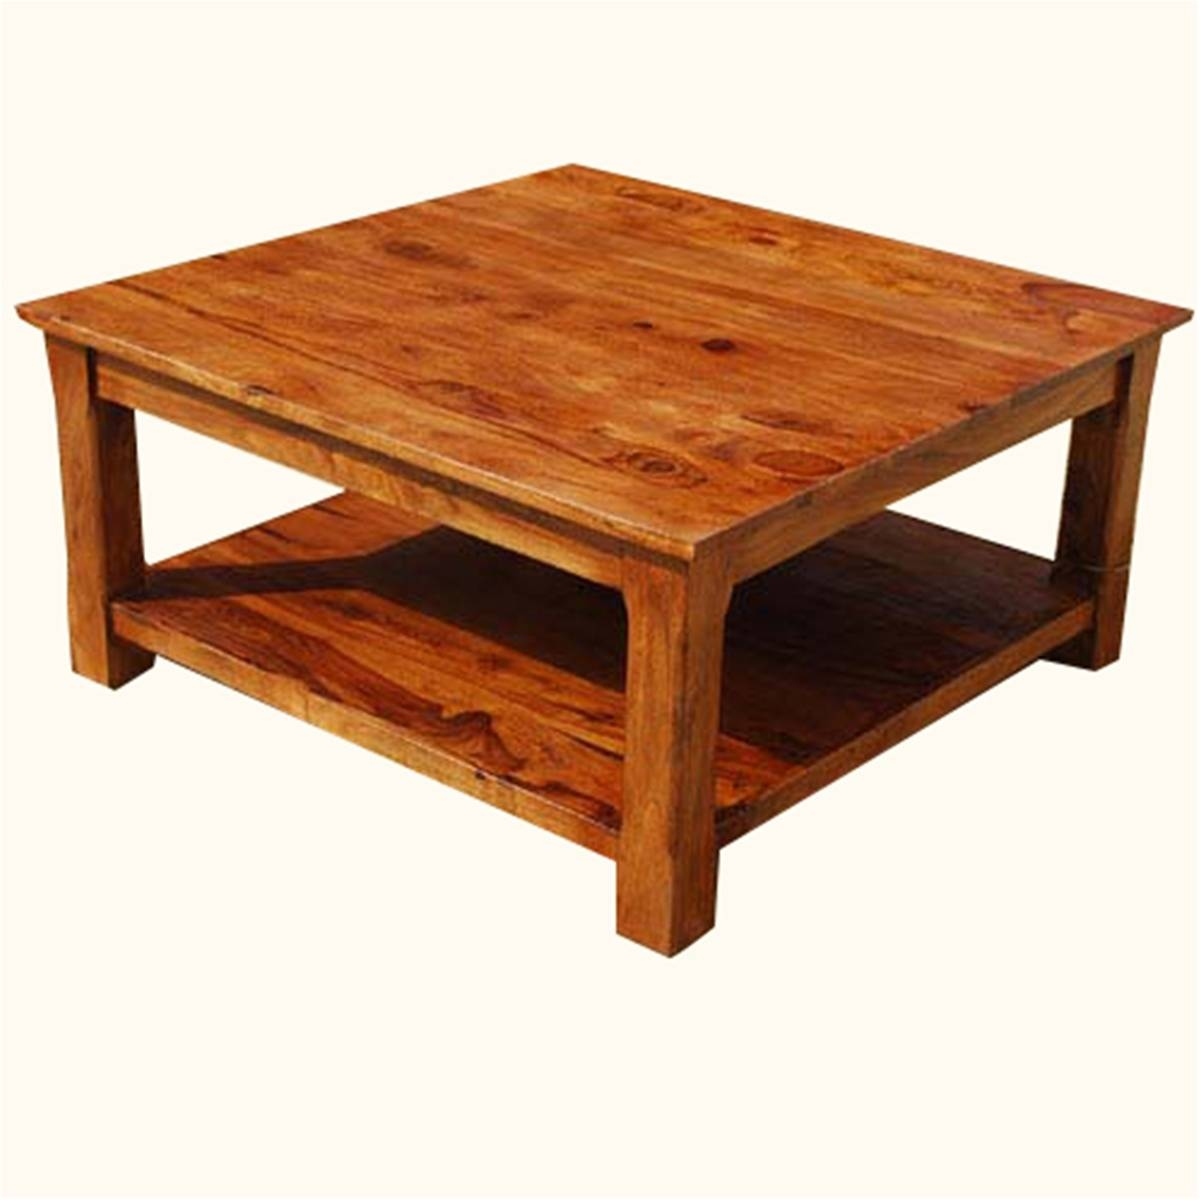 Large Square Coffee Table Increasing Interior Elegance - Ruchi Designs for Cheap Oak Coffee Tables (Image 24 of 30)